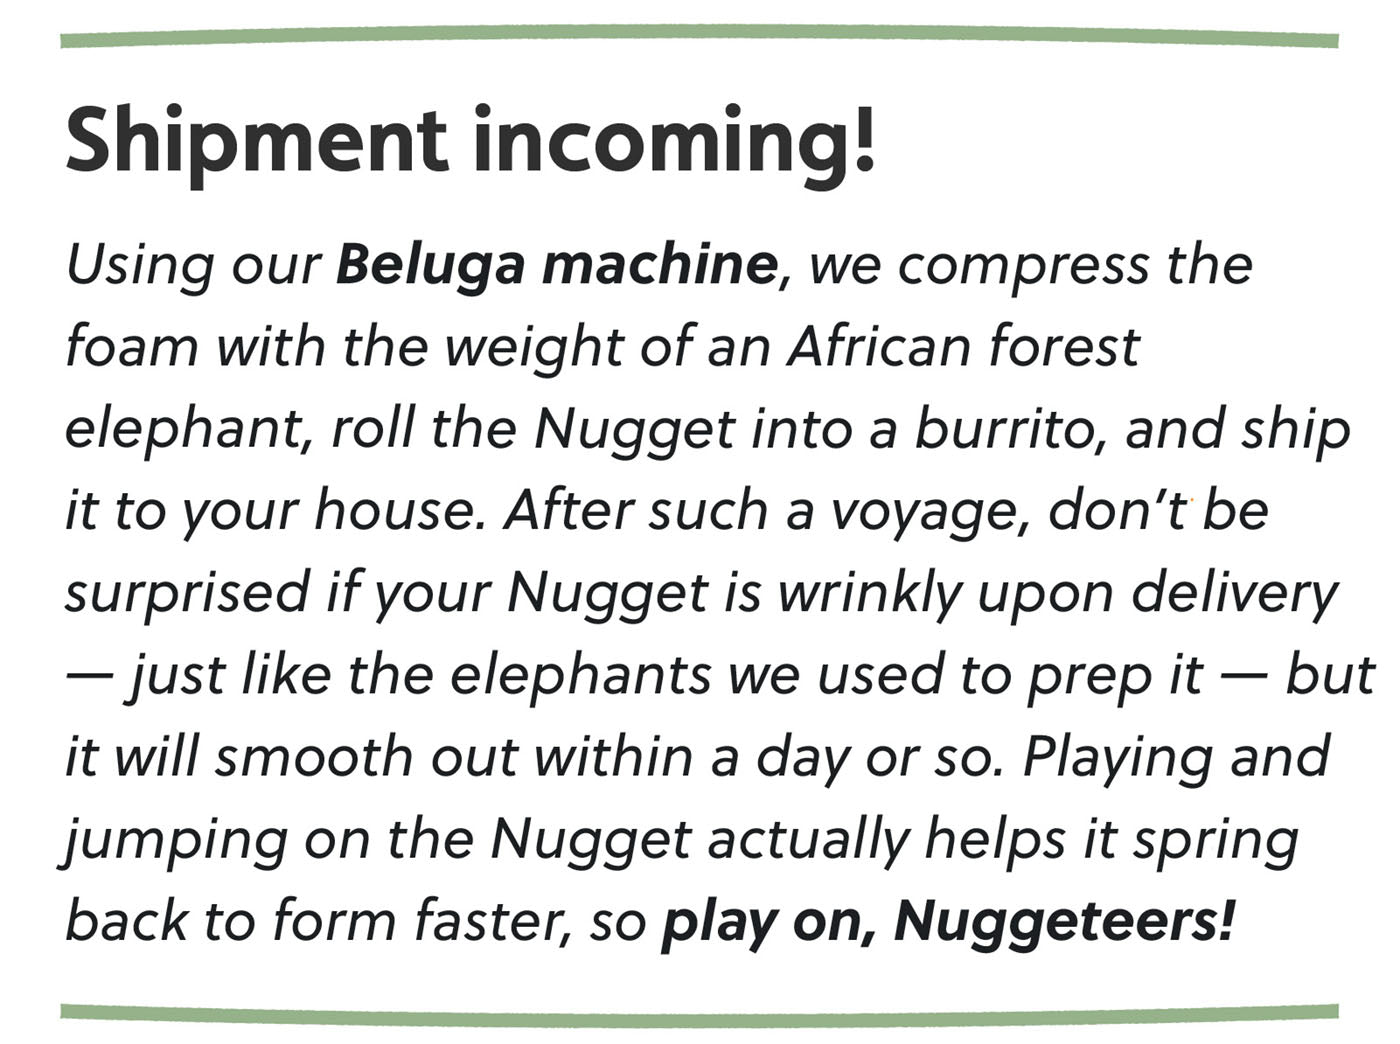 """Shipment incoming! Using our <a href=""""https://nuggetcomfort.com/blogs/big/big-machines-of-hq-the-beluga"""">Beluga machine</a>, we compress the foam with the weight of an African forest elephant, roll the Nugget into a burrito, and ship it to your house. After such a voyage, don't be surprised if your Nugget is wrinkly upon delivery — just like the elephants we used to prep it — but it will smooth out within a day or so. Playing and jumping on the Nugget actually helps it spring back to form faster, so play on, Nuggeteers!"""